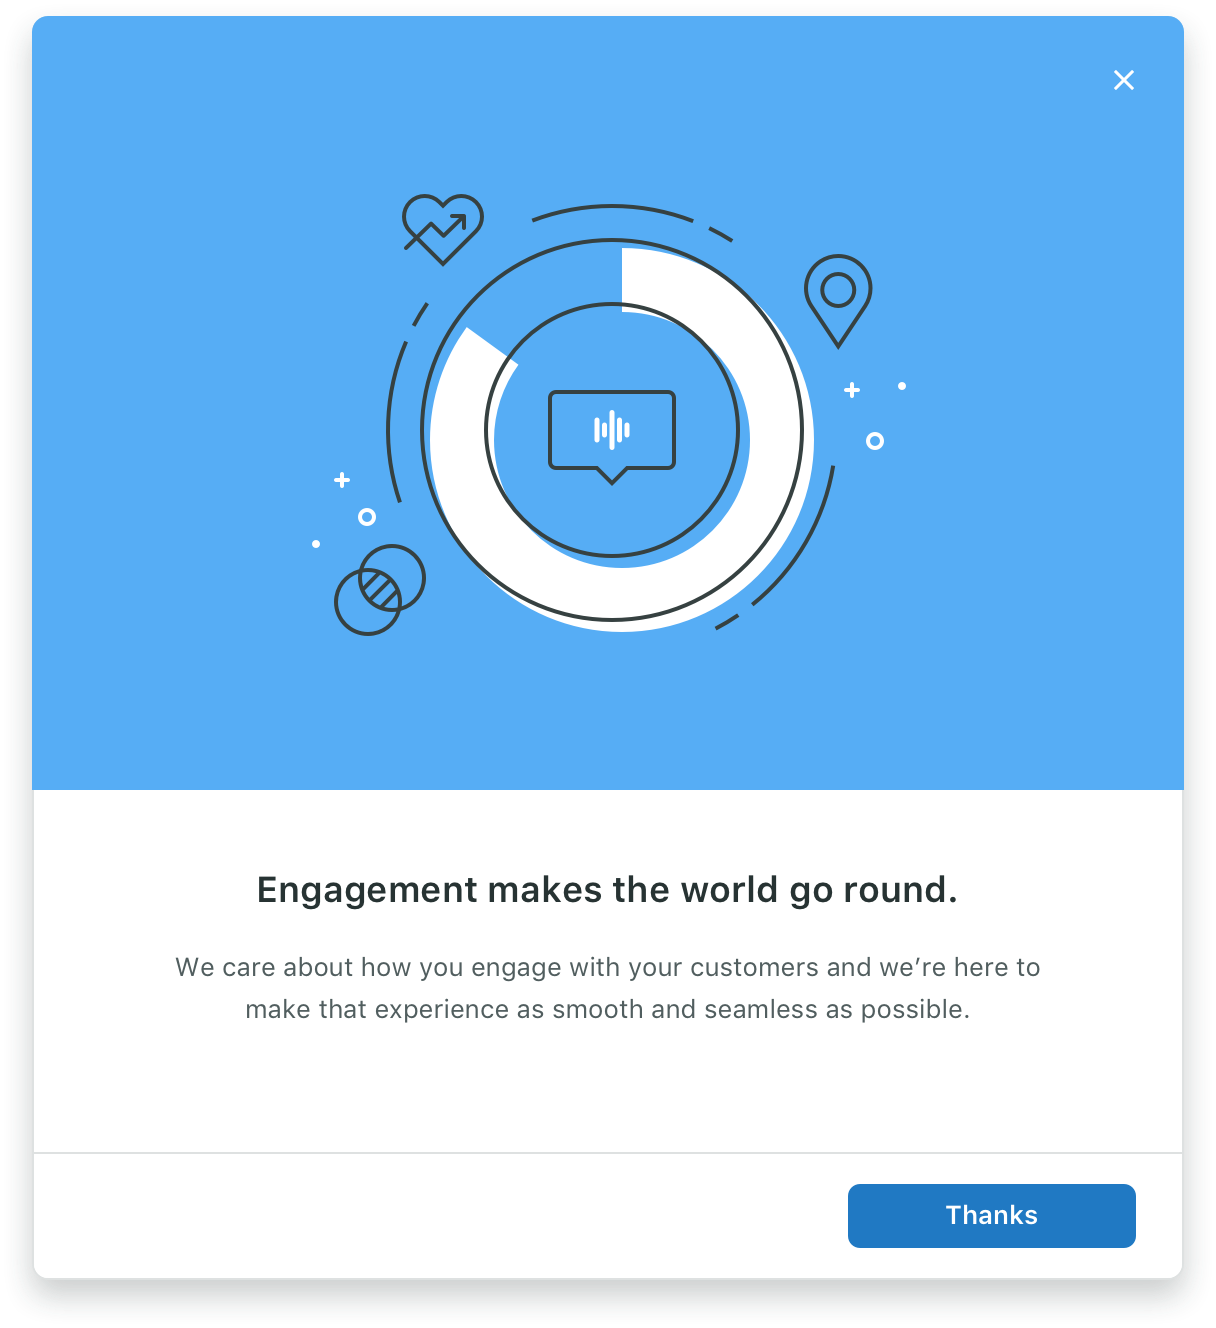 Modal with expressive content